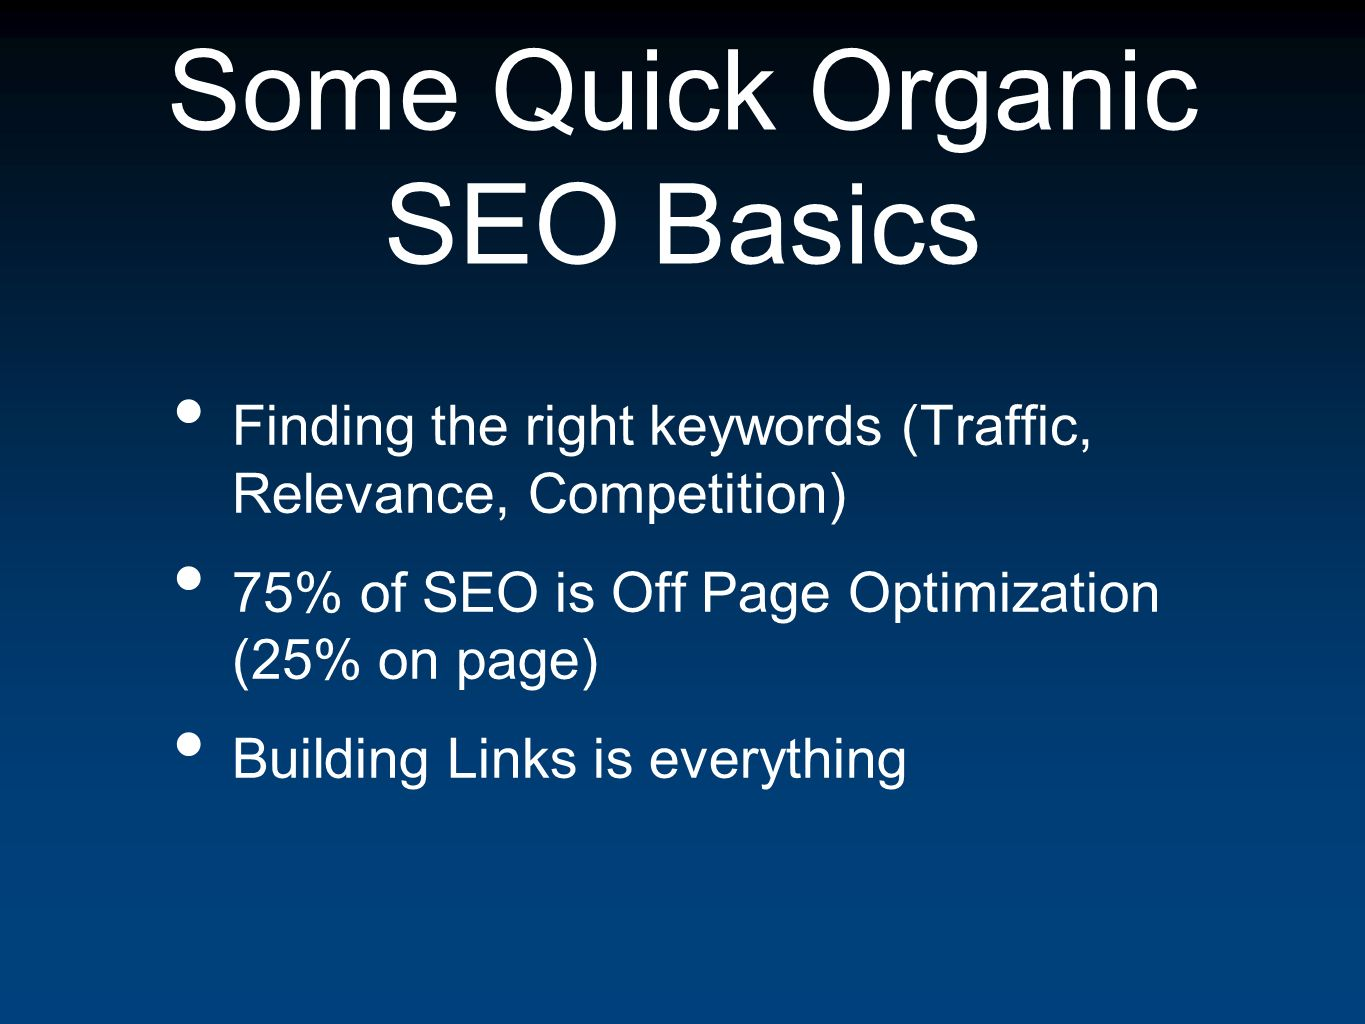 Some Quick Organic SEO Basics Finding the right keywords (Traffic, Relevance, Competition) 75% of SEO is Off Page Optimization (25% on page) Building